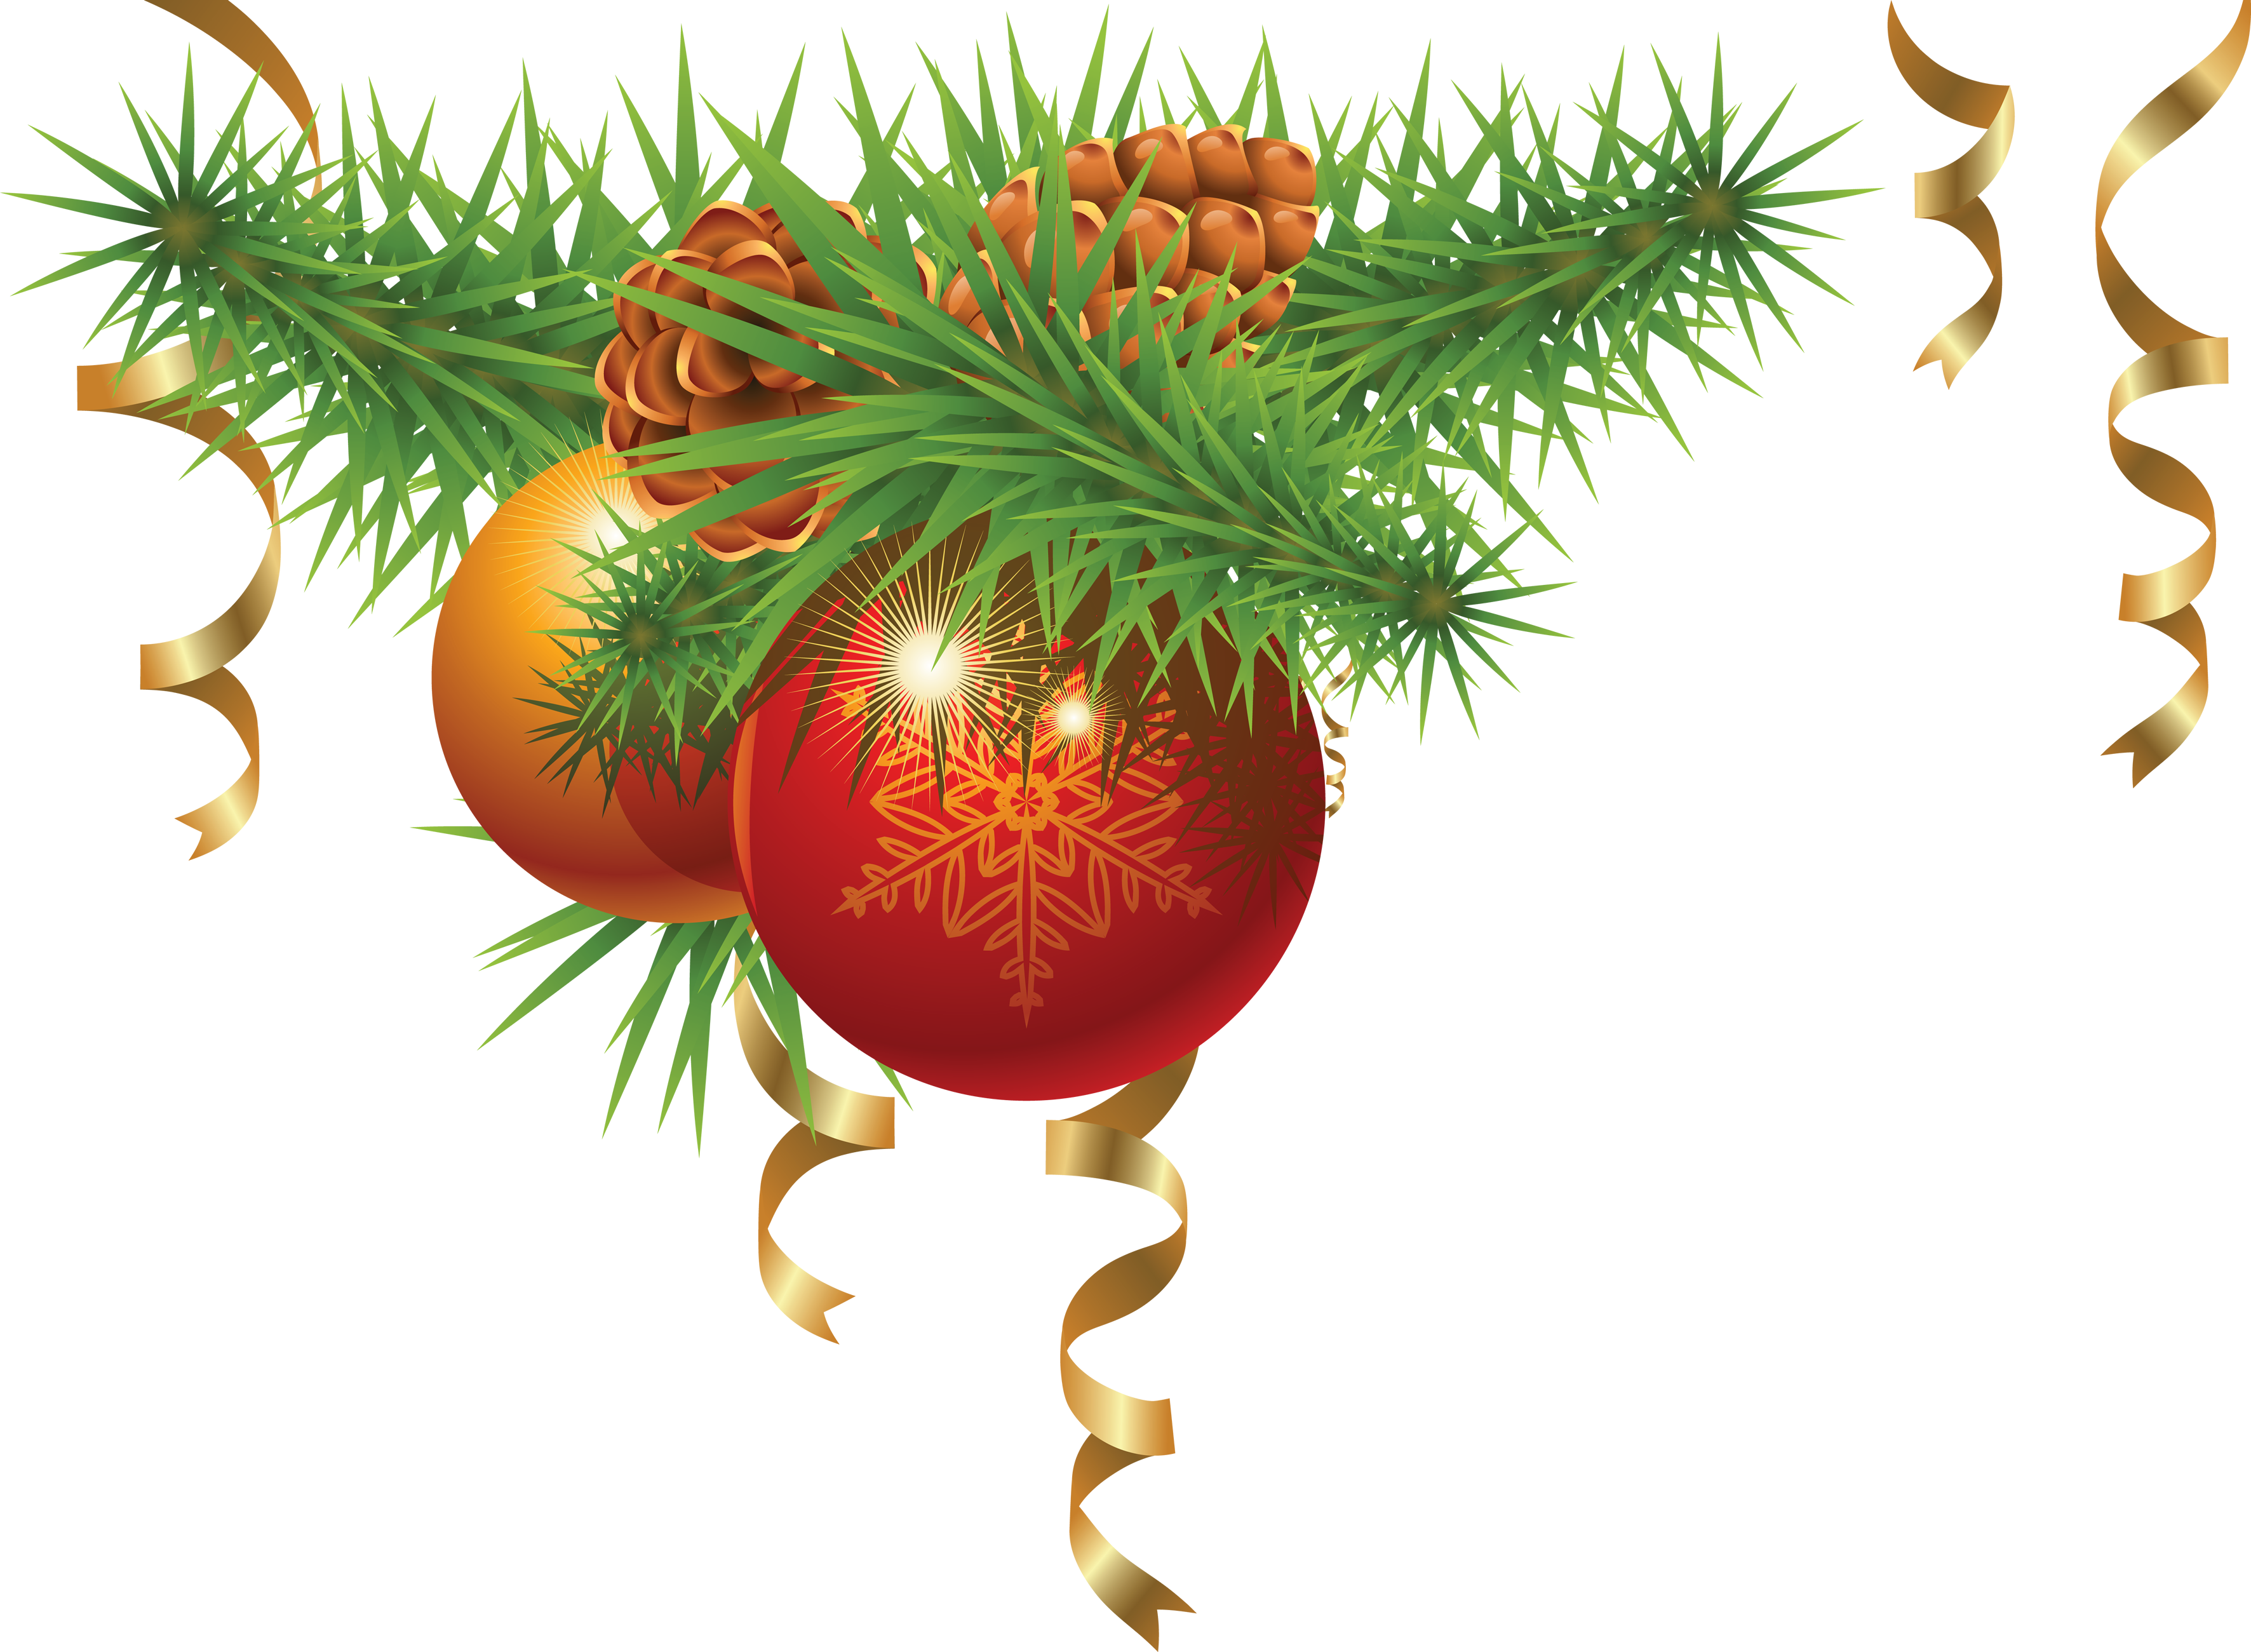 New yeard ornaments png. Christmas images download decoration